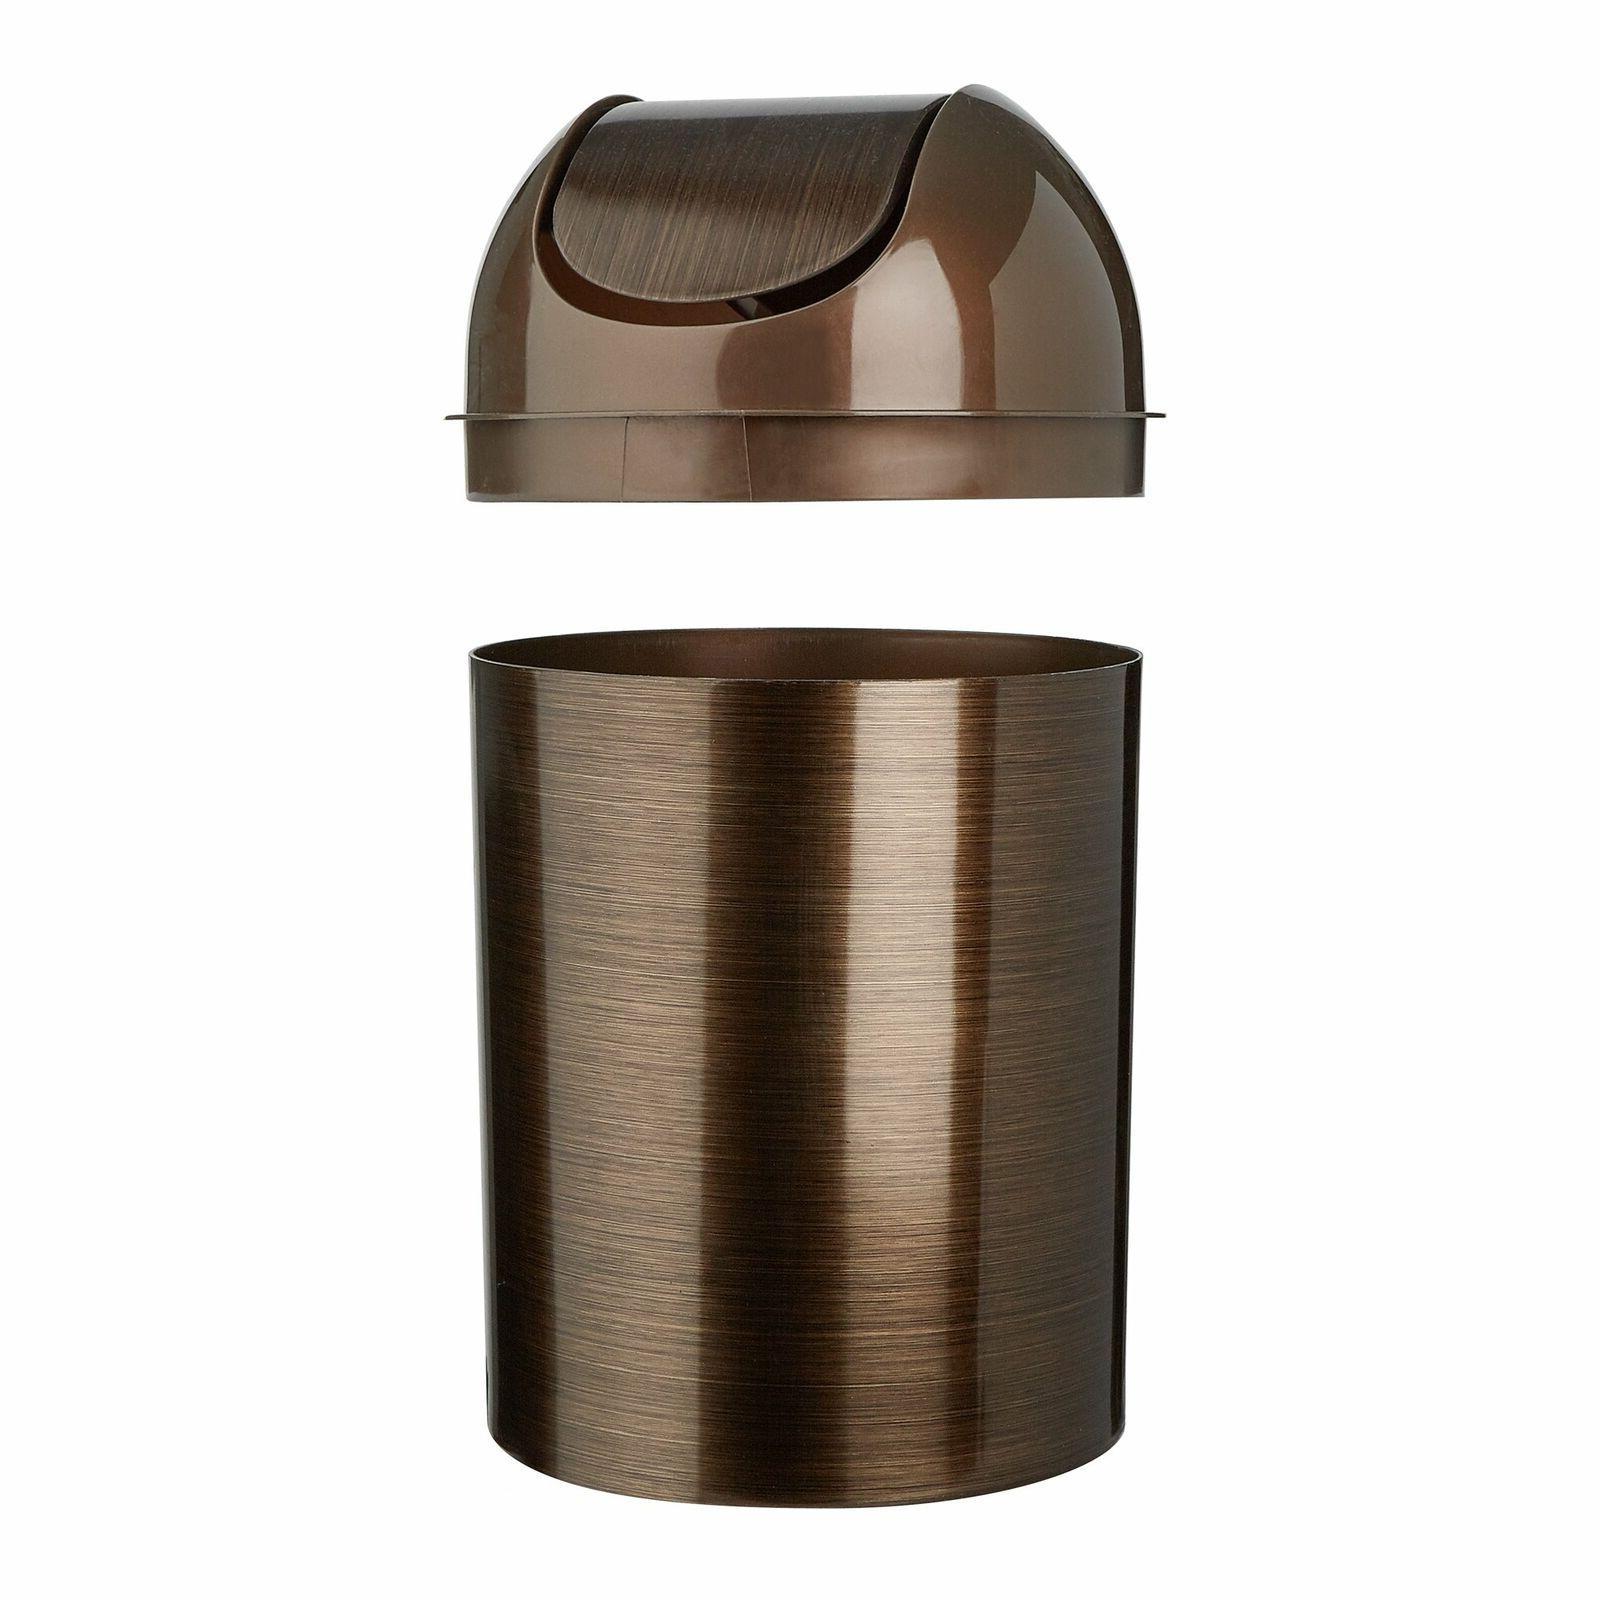 Oil Rubbed Bronze Trash Can Basket With